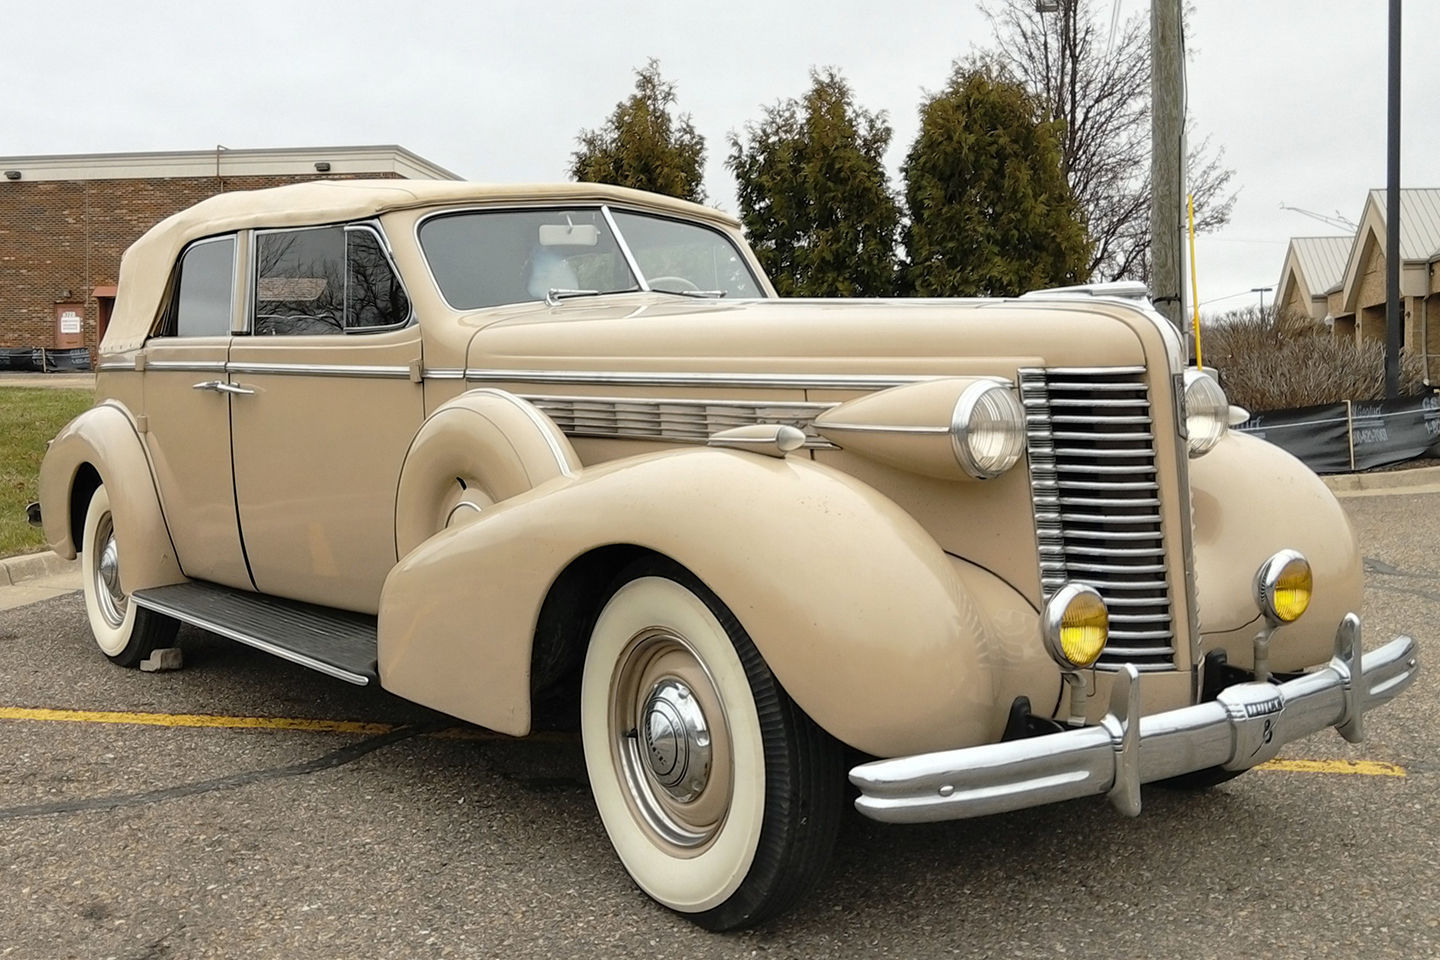 30 Years With One Family 1938 Buick Roadmaster Phaeton